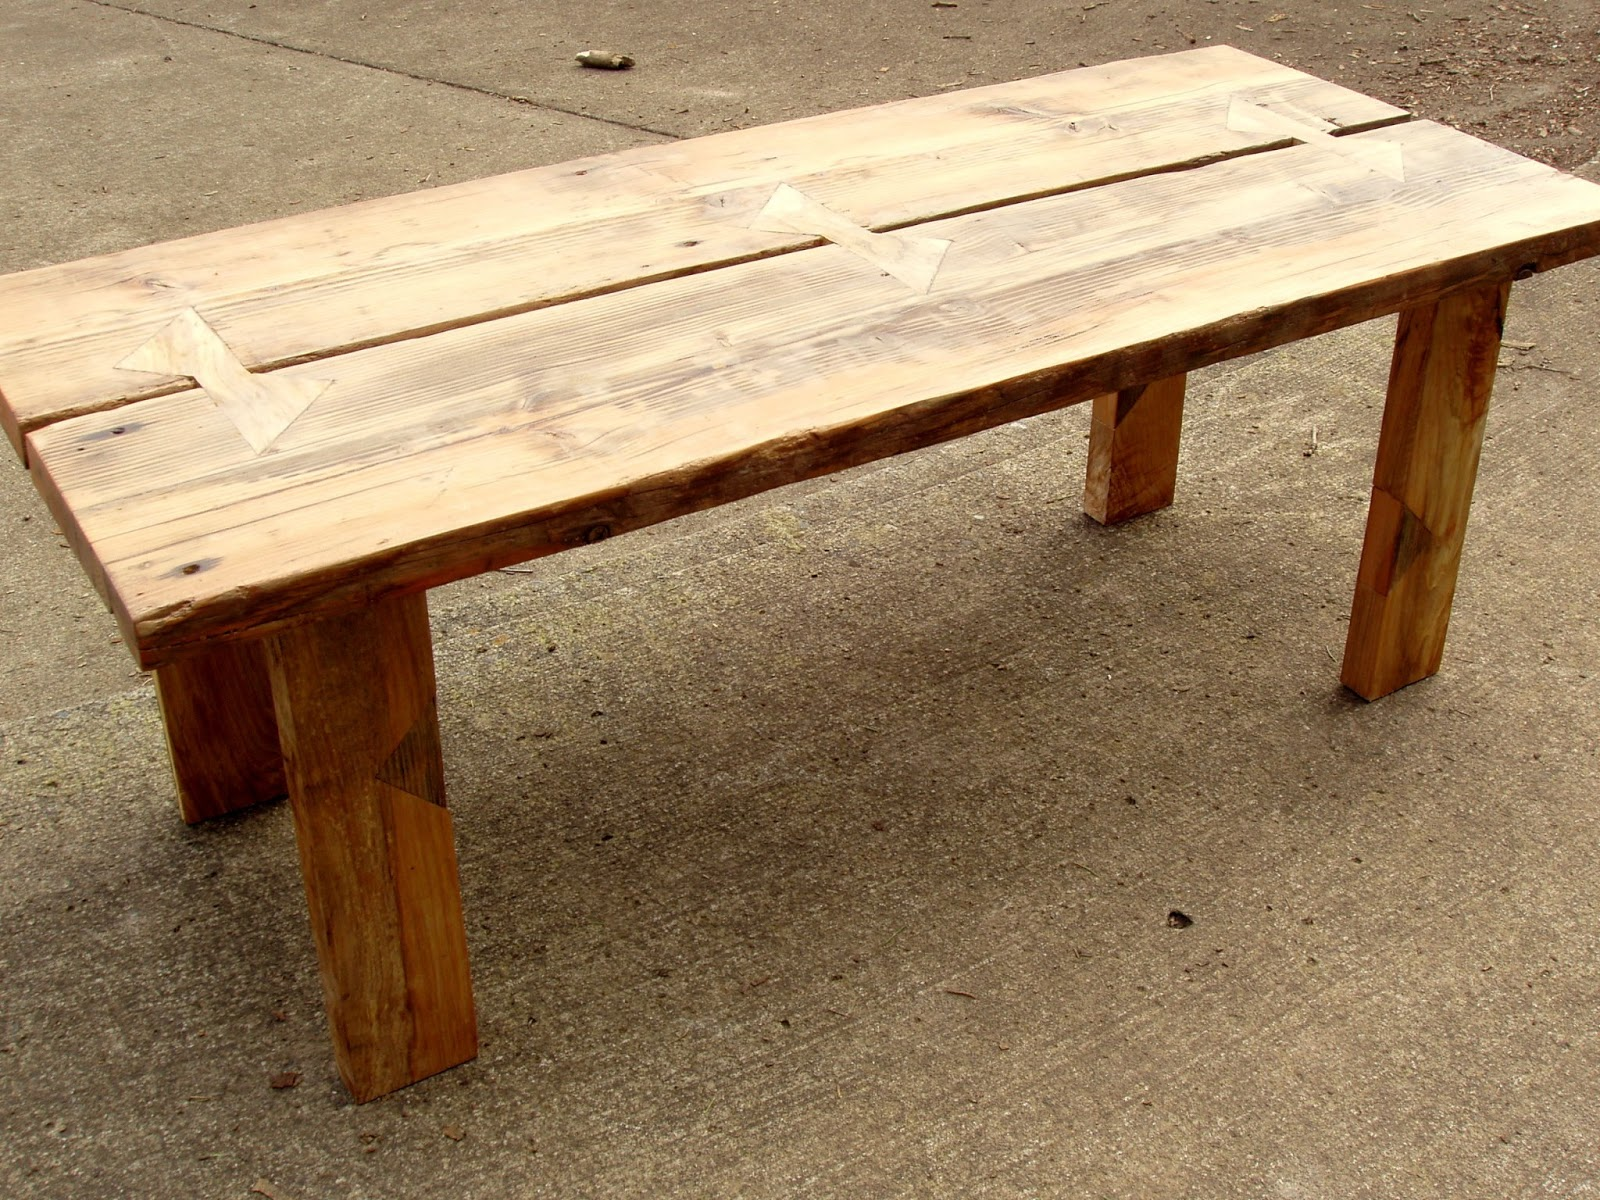 Pnw reclaimed wood furniture for Portland reclaimed wood furniture